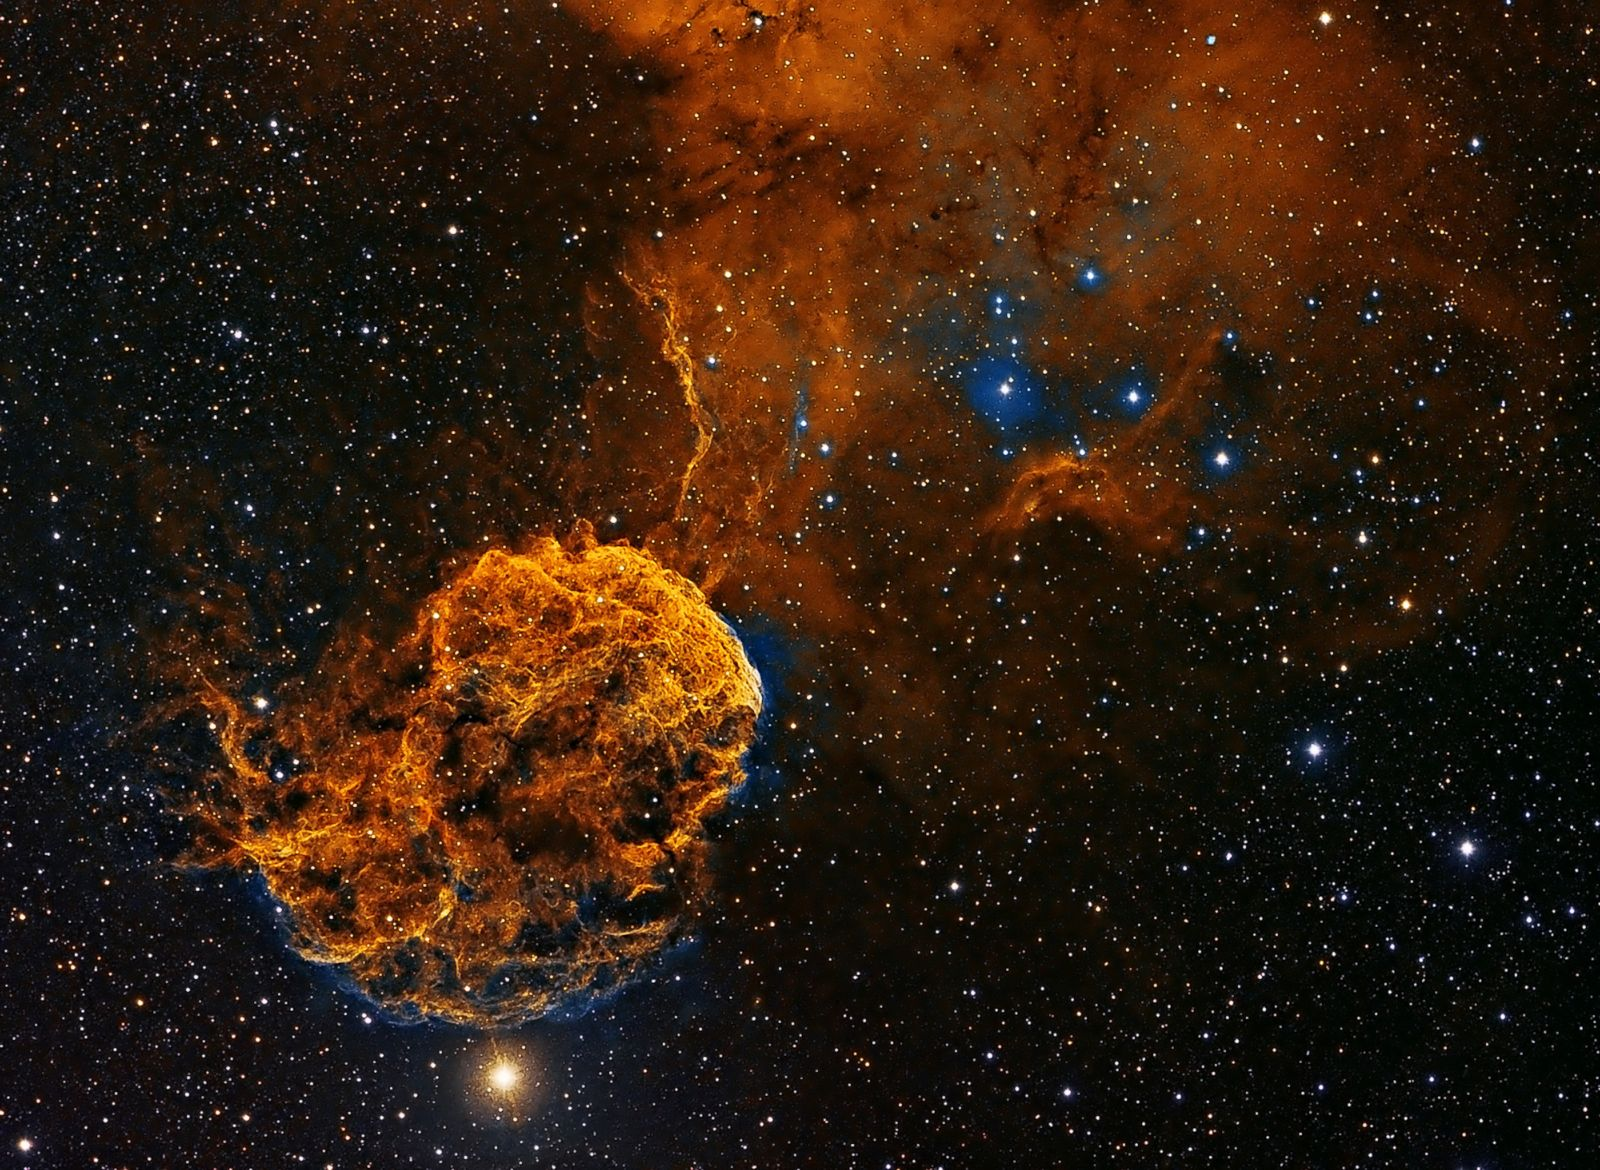 Astronomy Picture of the Day Astronomy photograph of the day